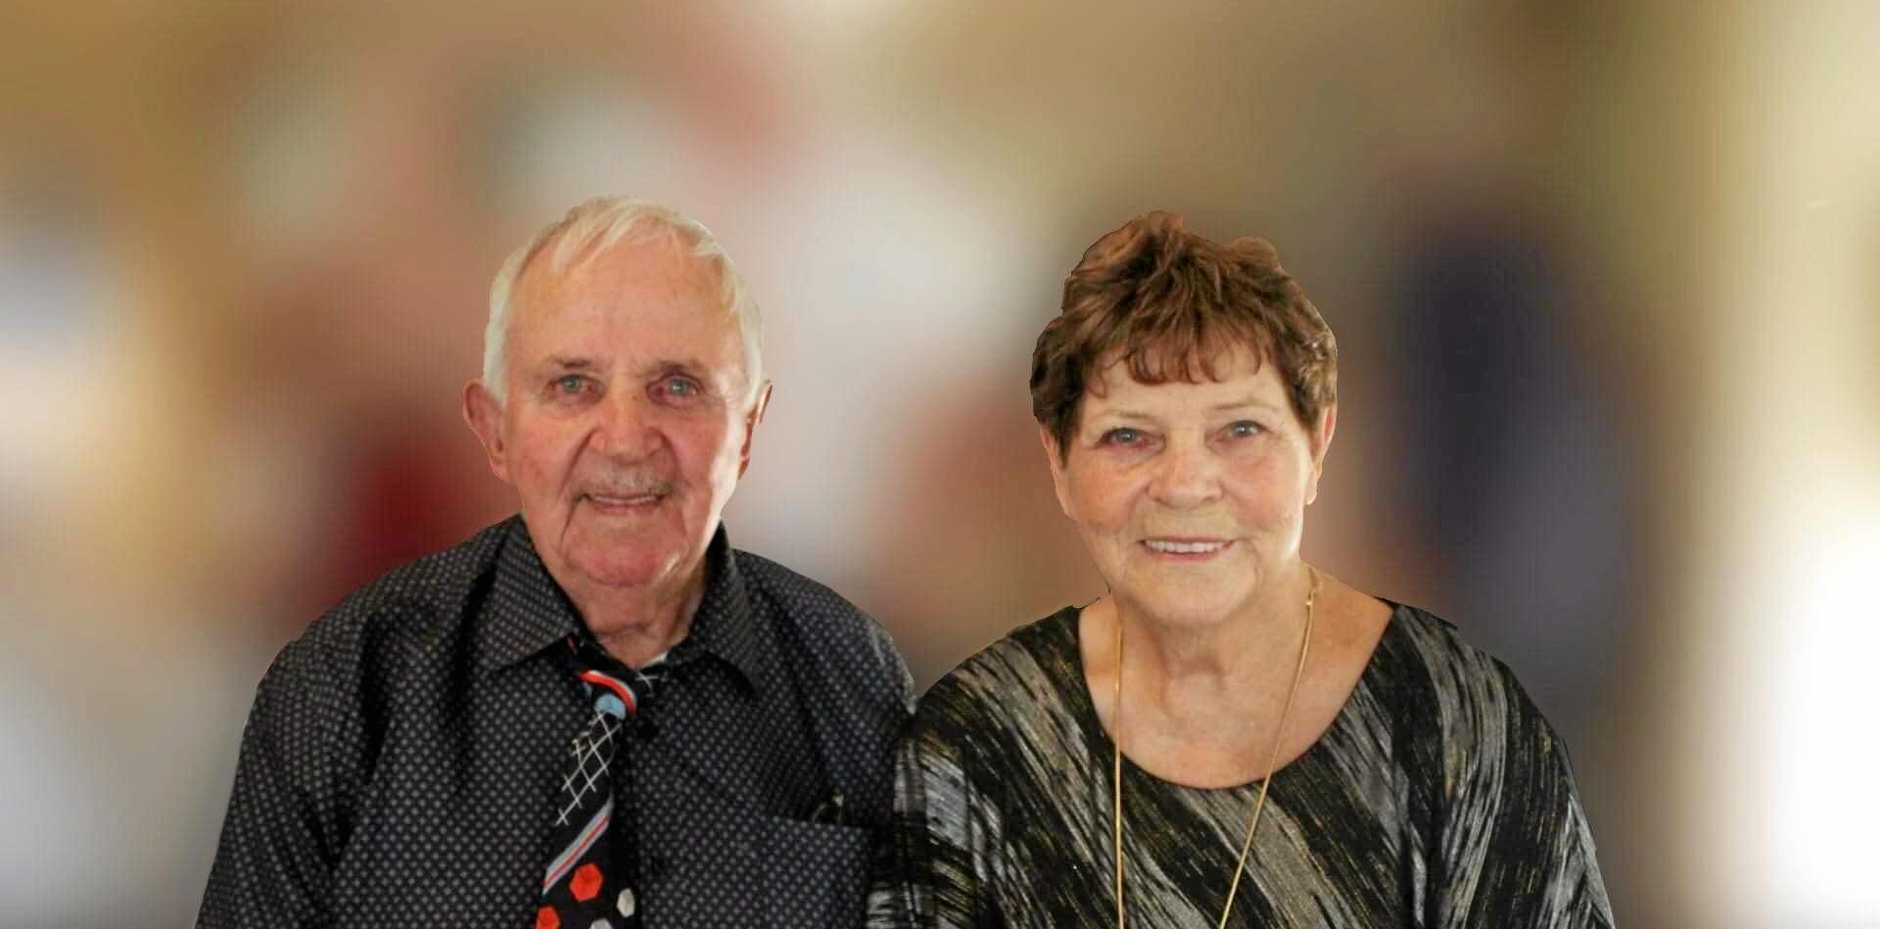 DIAMOND ANNIVERSARY: Eric and his wife Violet celebrated their 60th wedding anniversary on February 15, 2019.